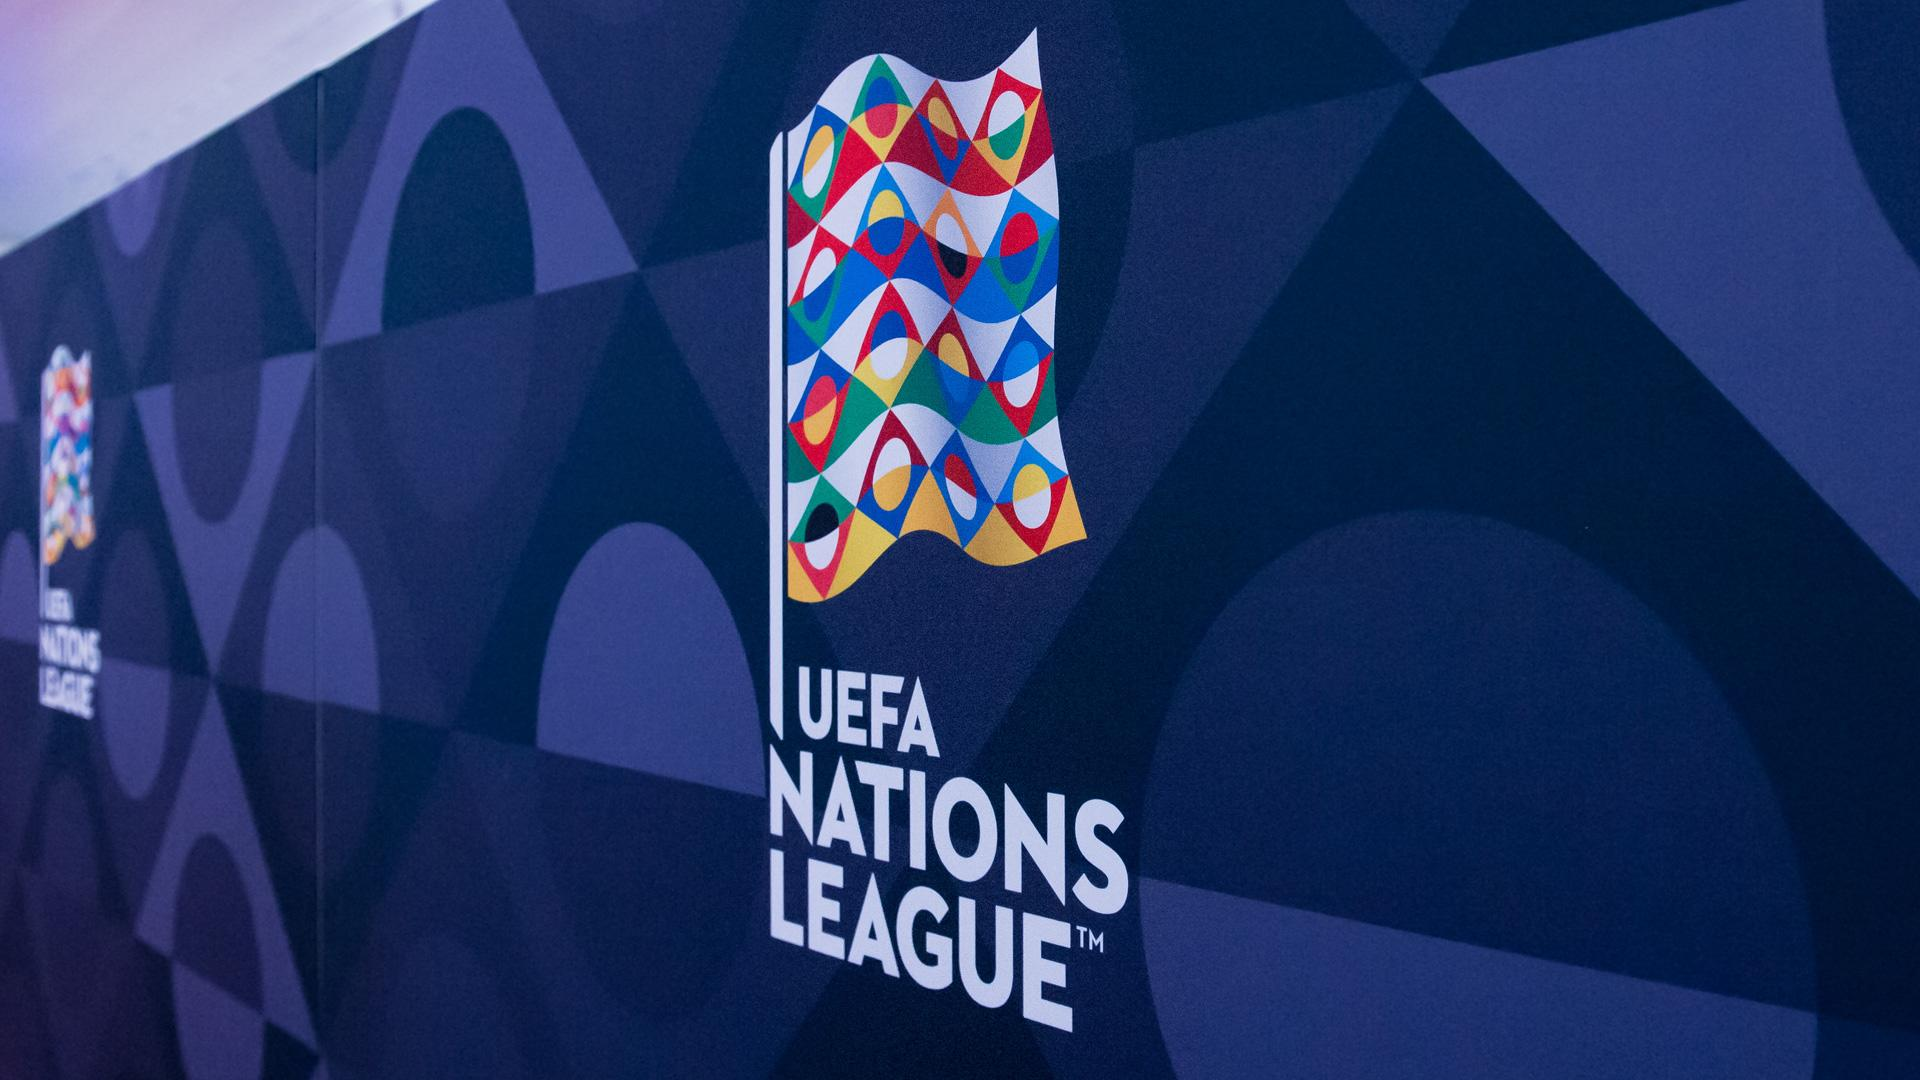 Nations league dem sieger winken 7 5 millionen euro for League table 6 nations